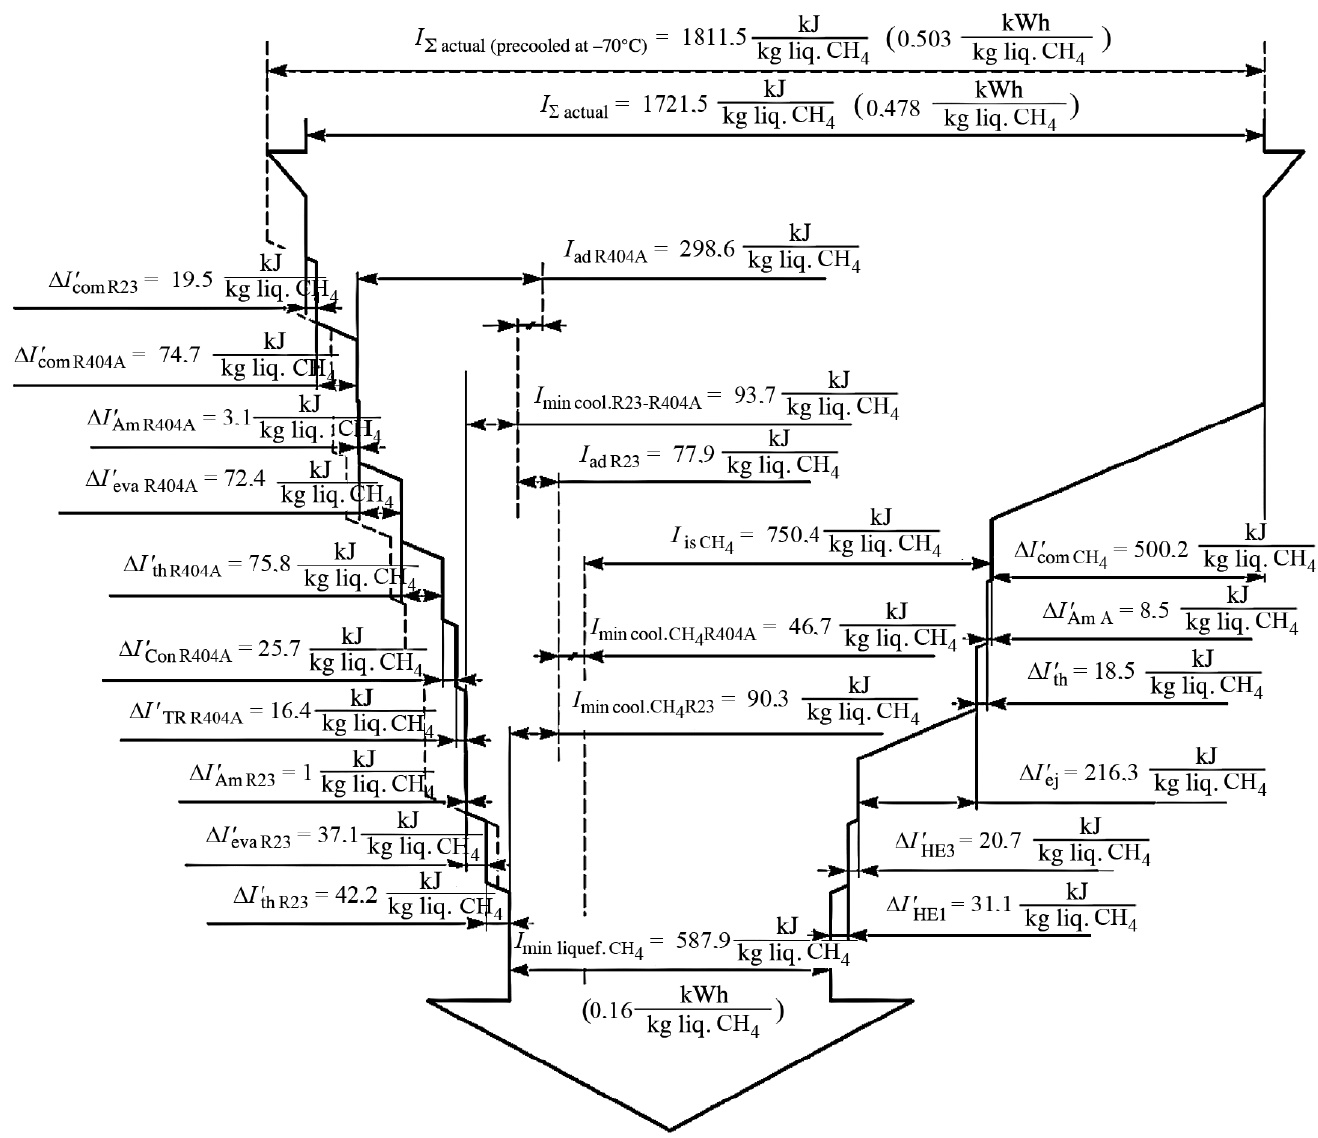 Statistical entropy analysis and experimental study of lng plant open image in new window pooptronica Image collections